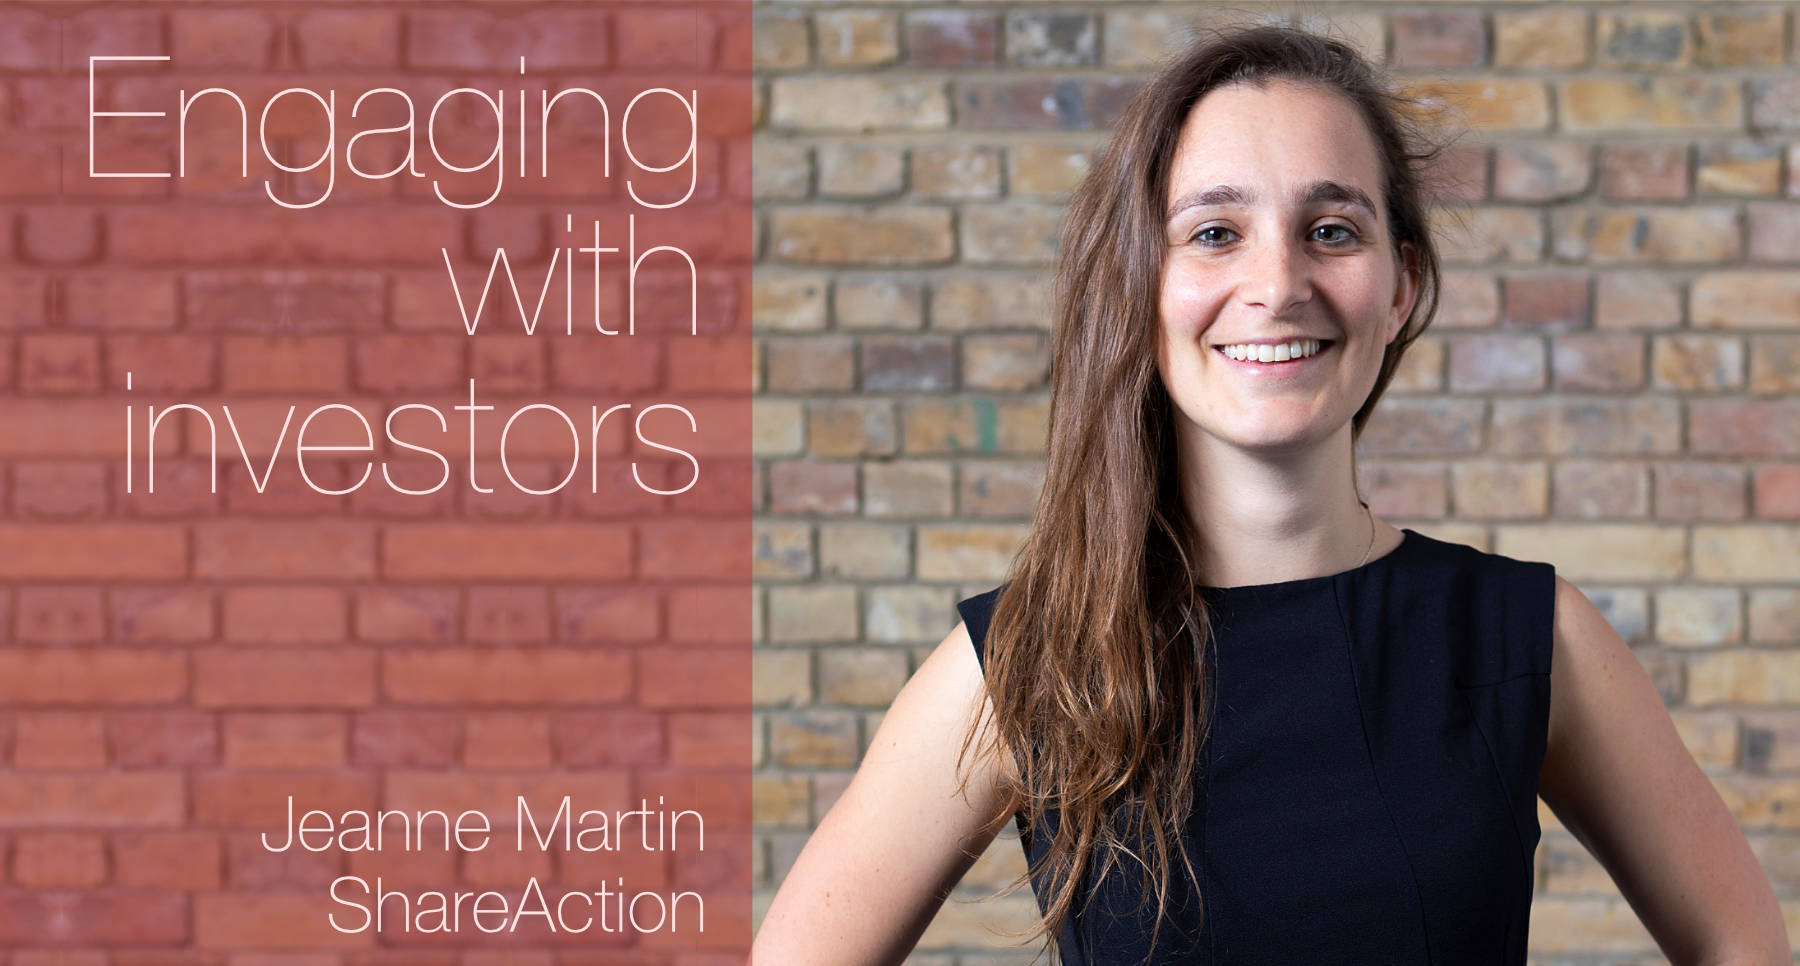 Jeanne Martin of ShareAction: Engaging with investors